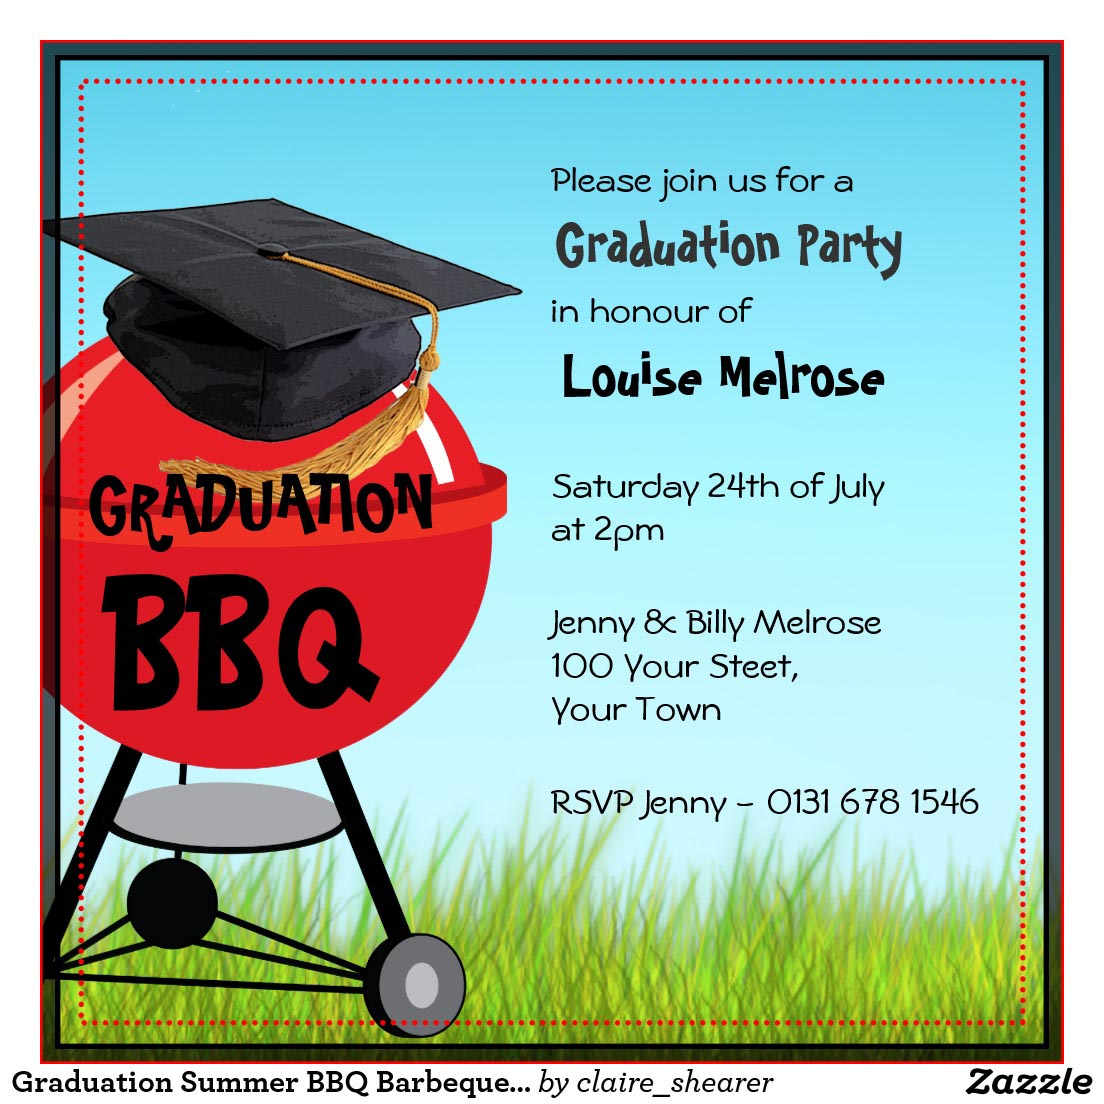 BBQ Graduation Party Invitations